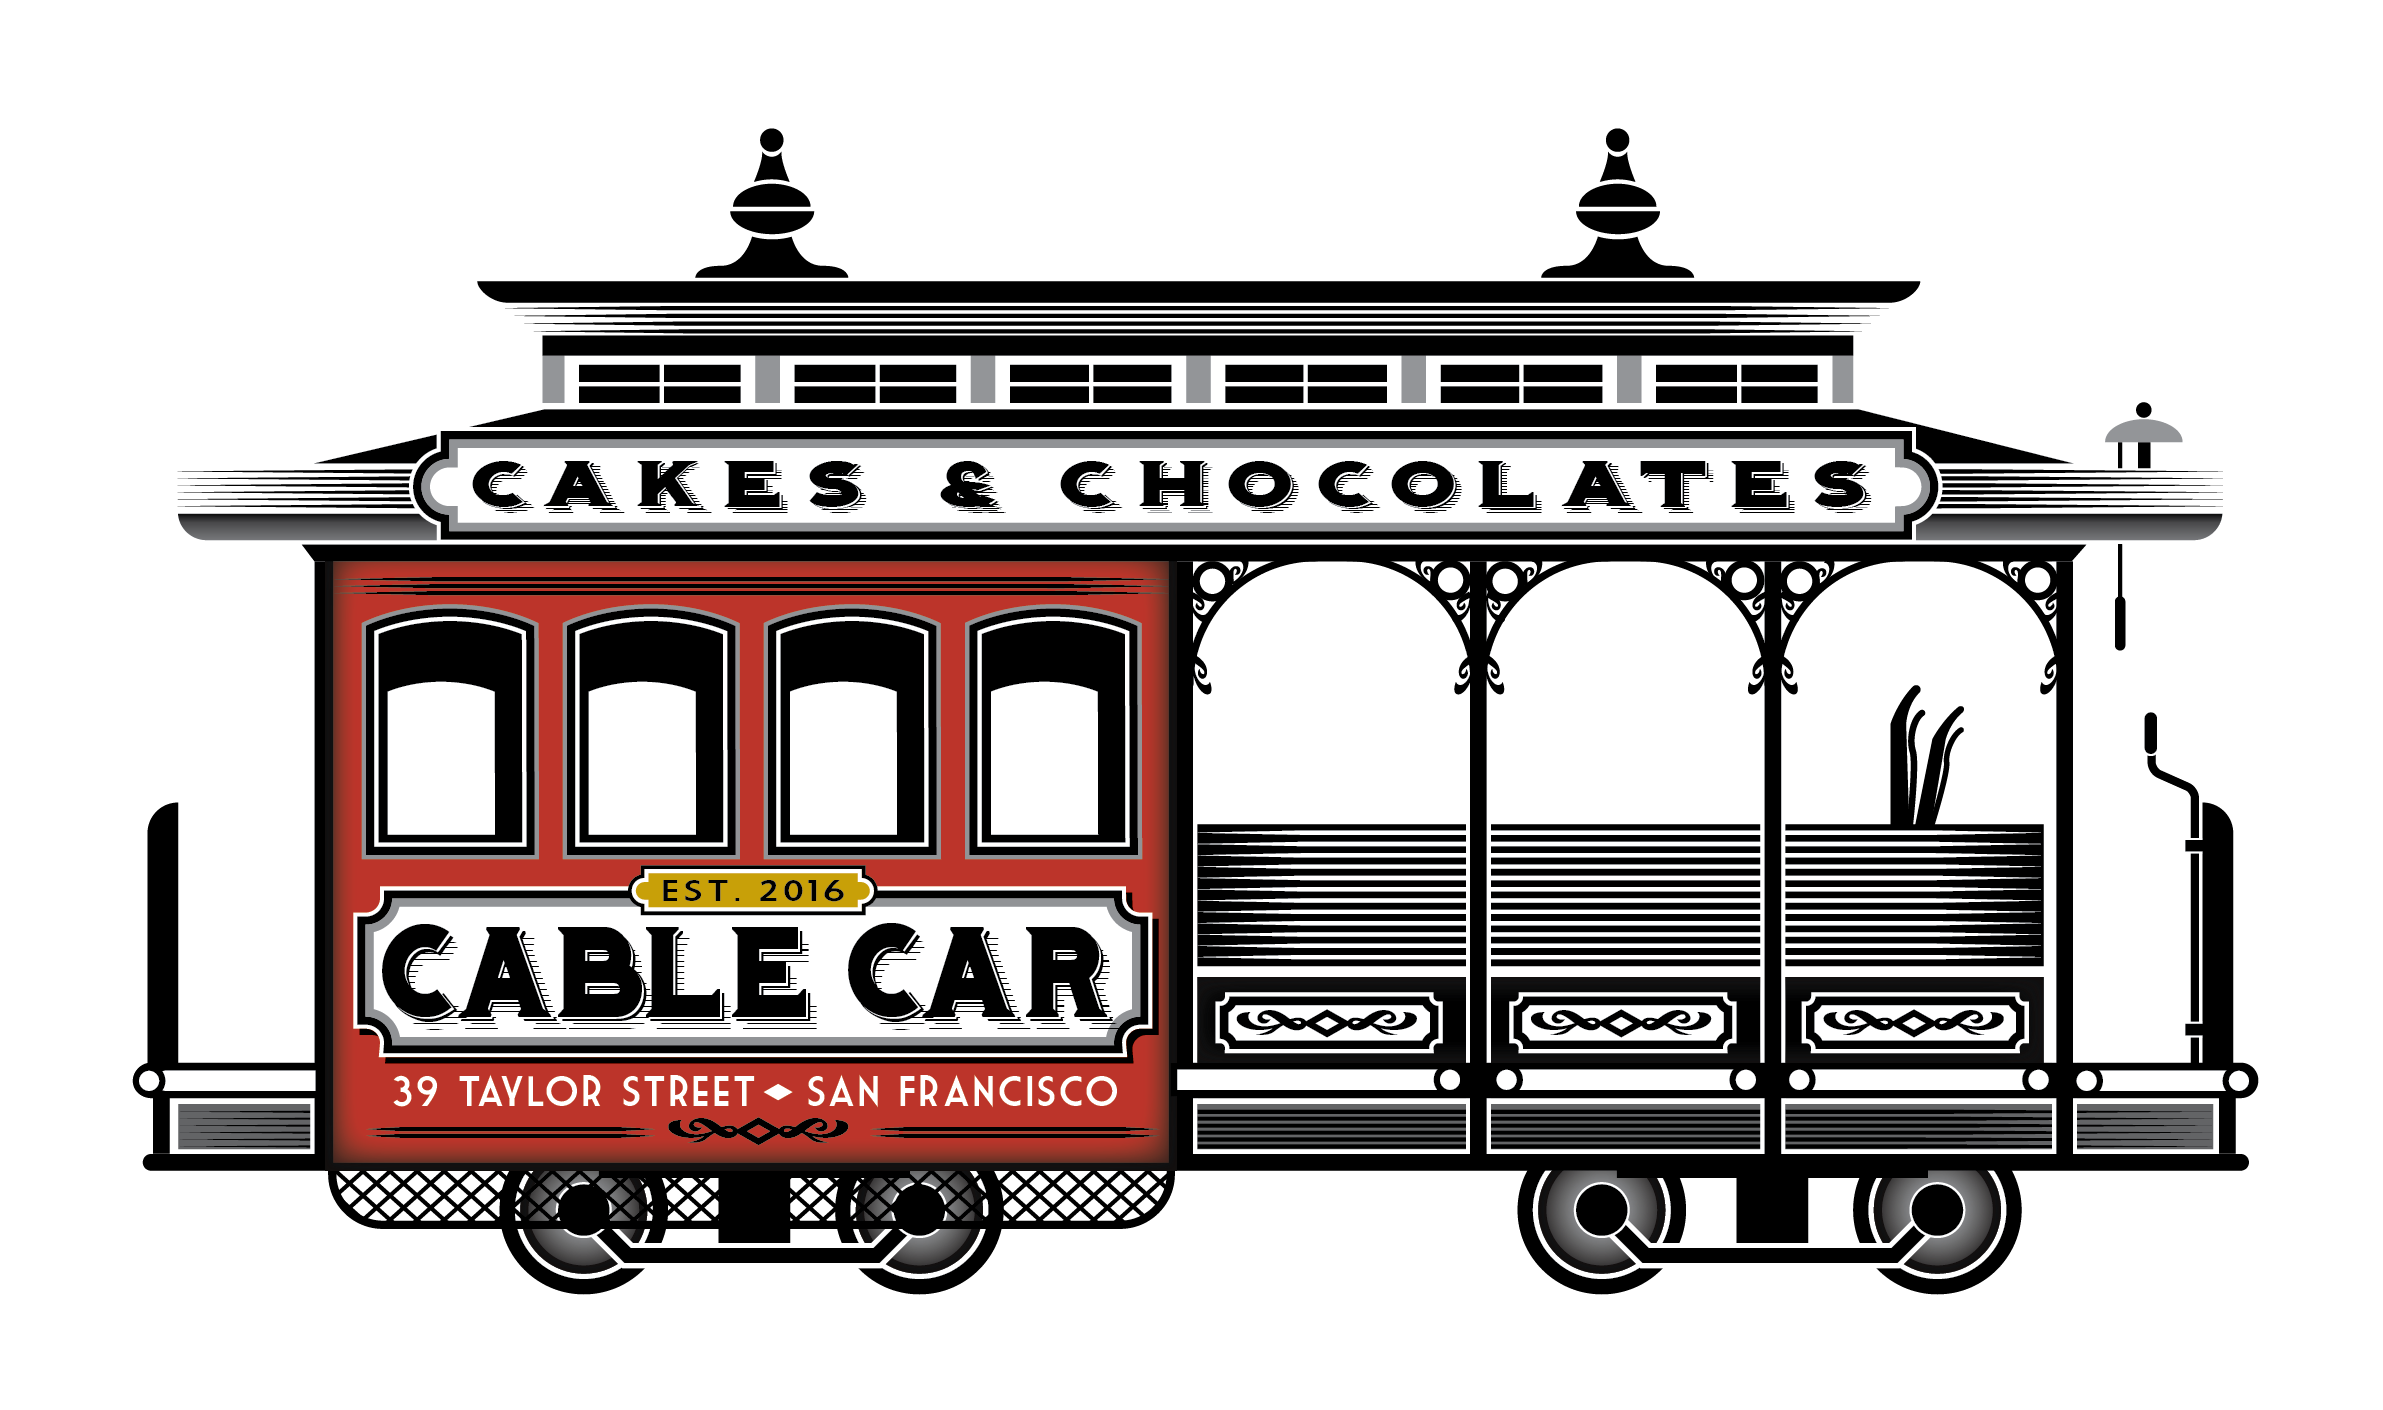 Street car clipart clipart library stock Cable Car Cakes and Chocolates - HOME clipart library stock